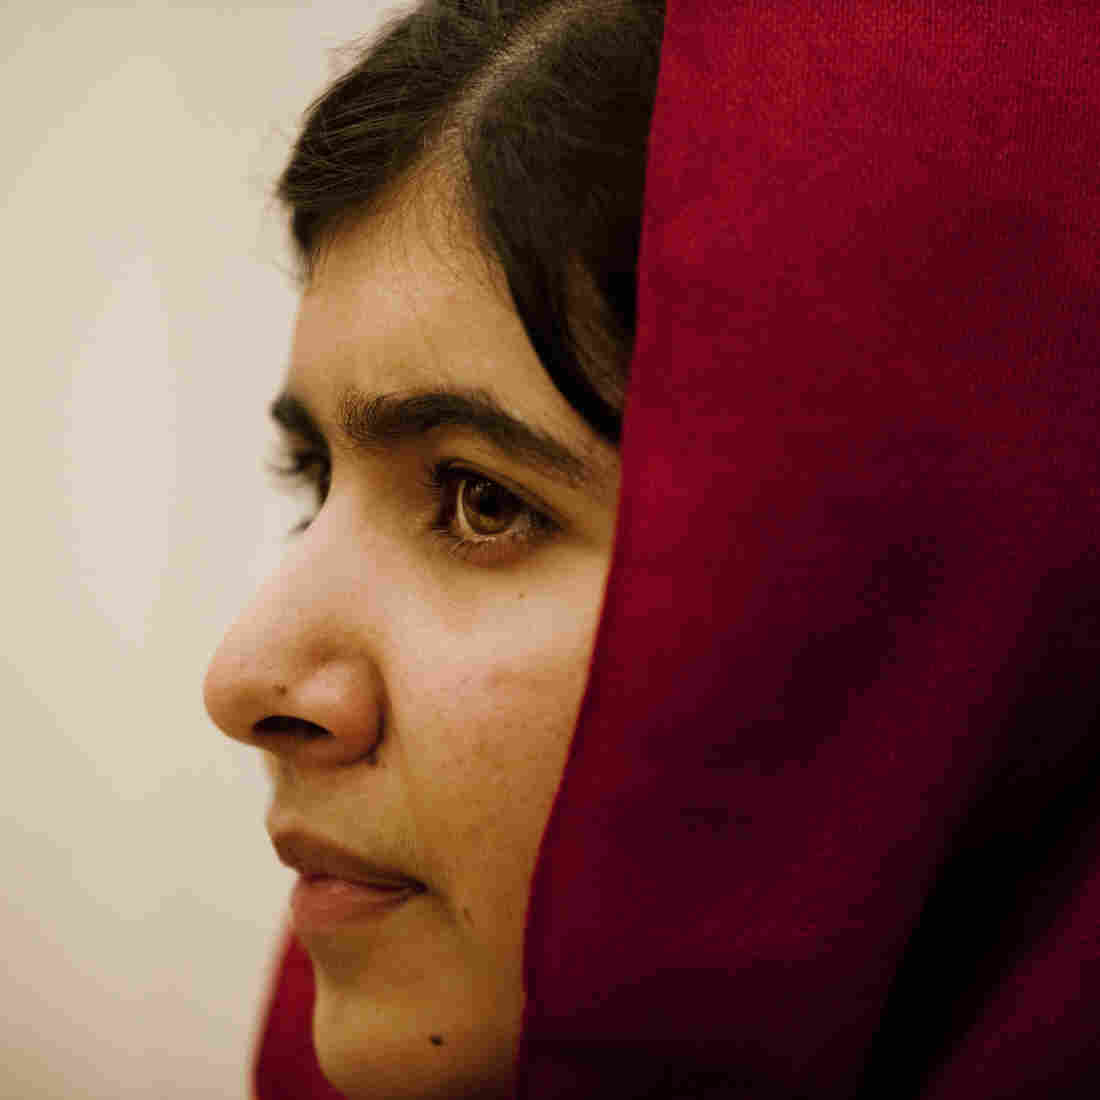 Malala Yousafzai: A 'Normal,' Yet Powerful Girl